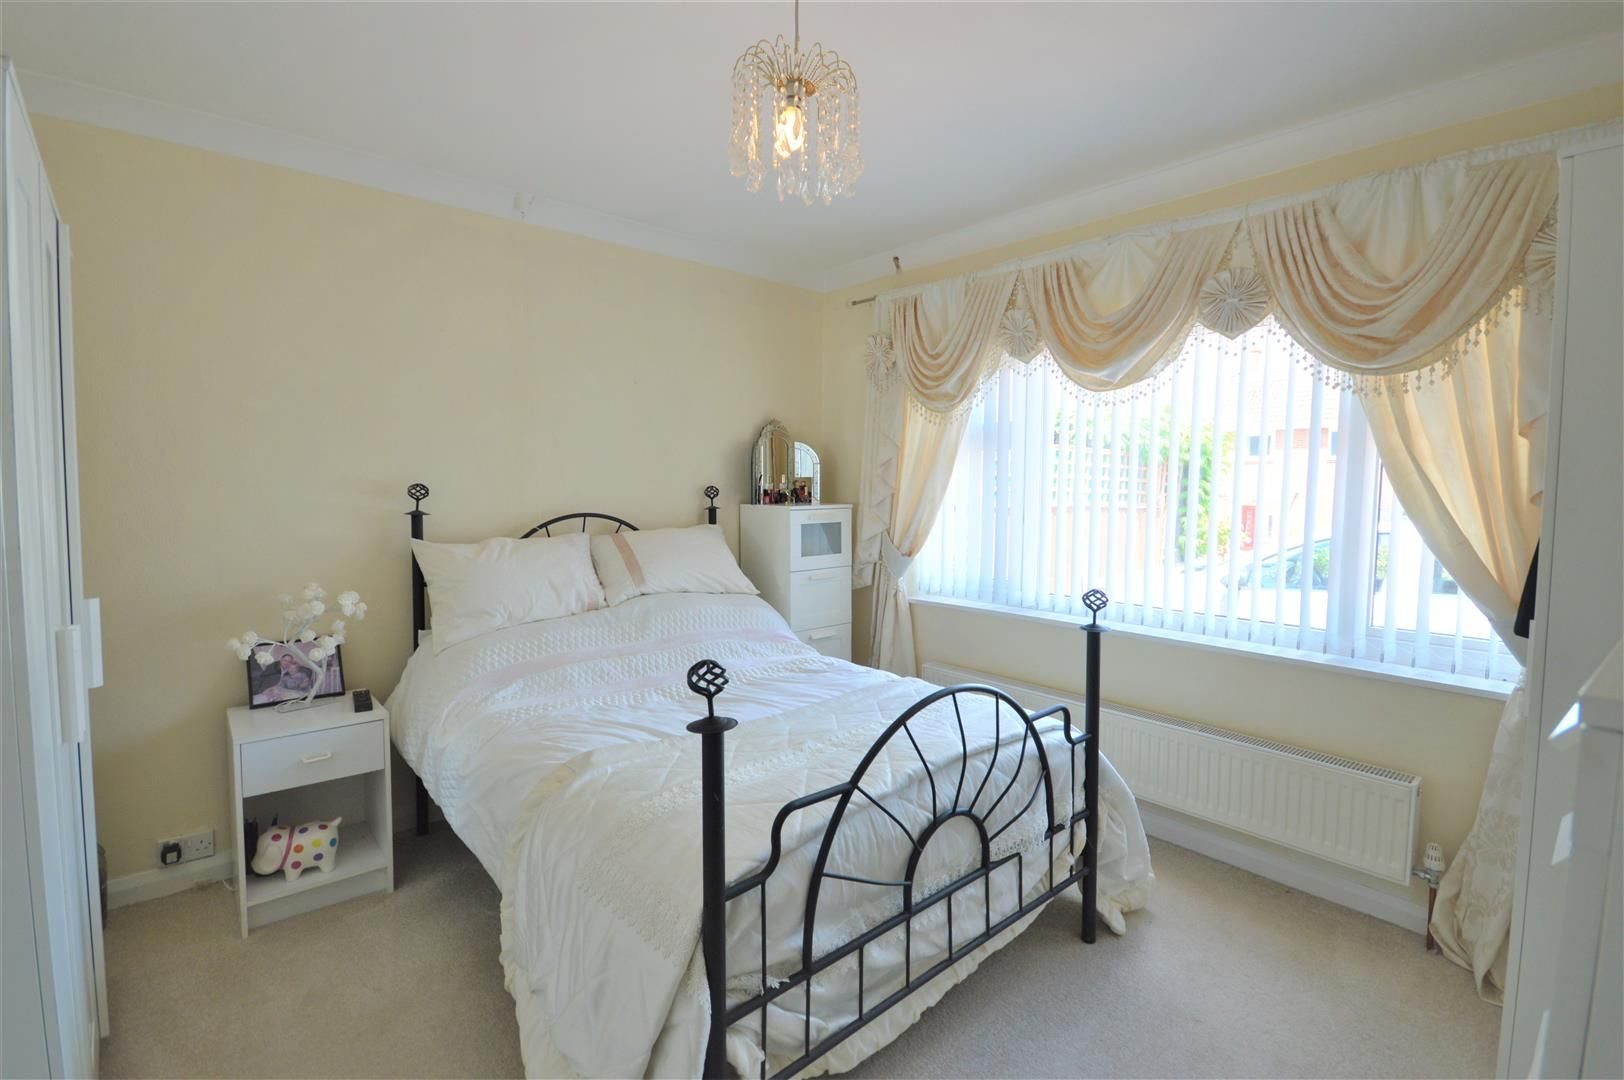 3 bed detached-bungalow for sale in Leominster 5